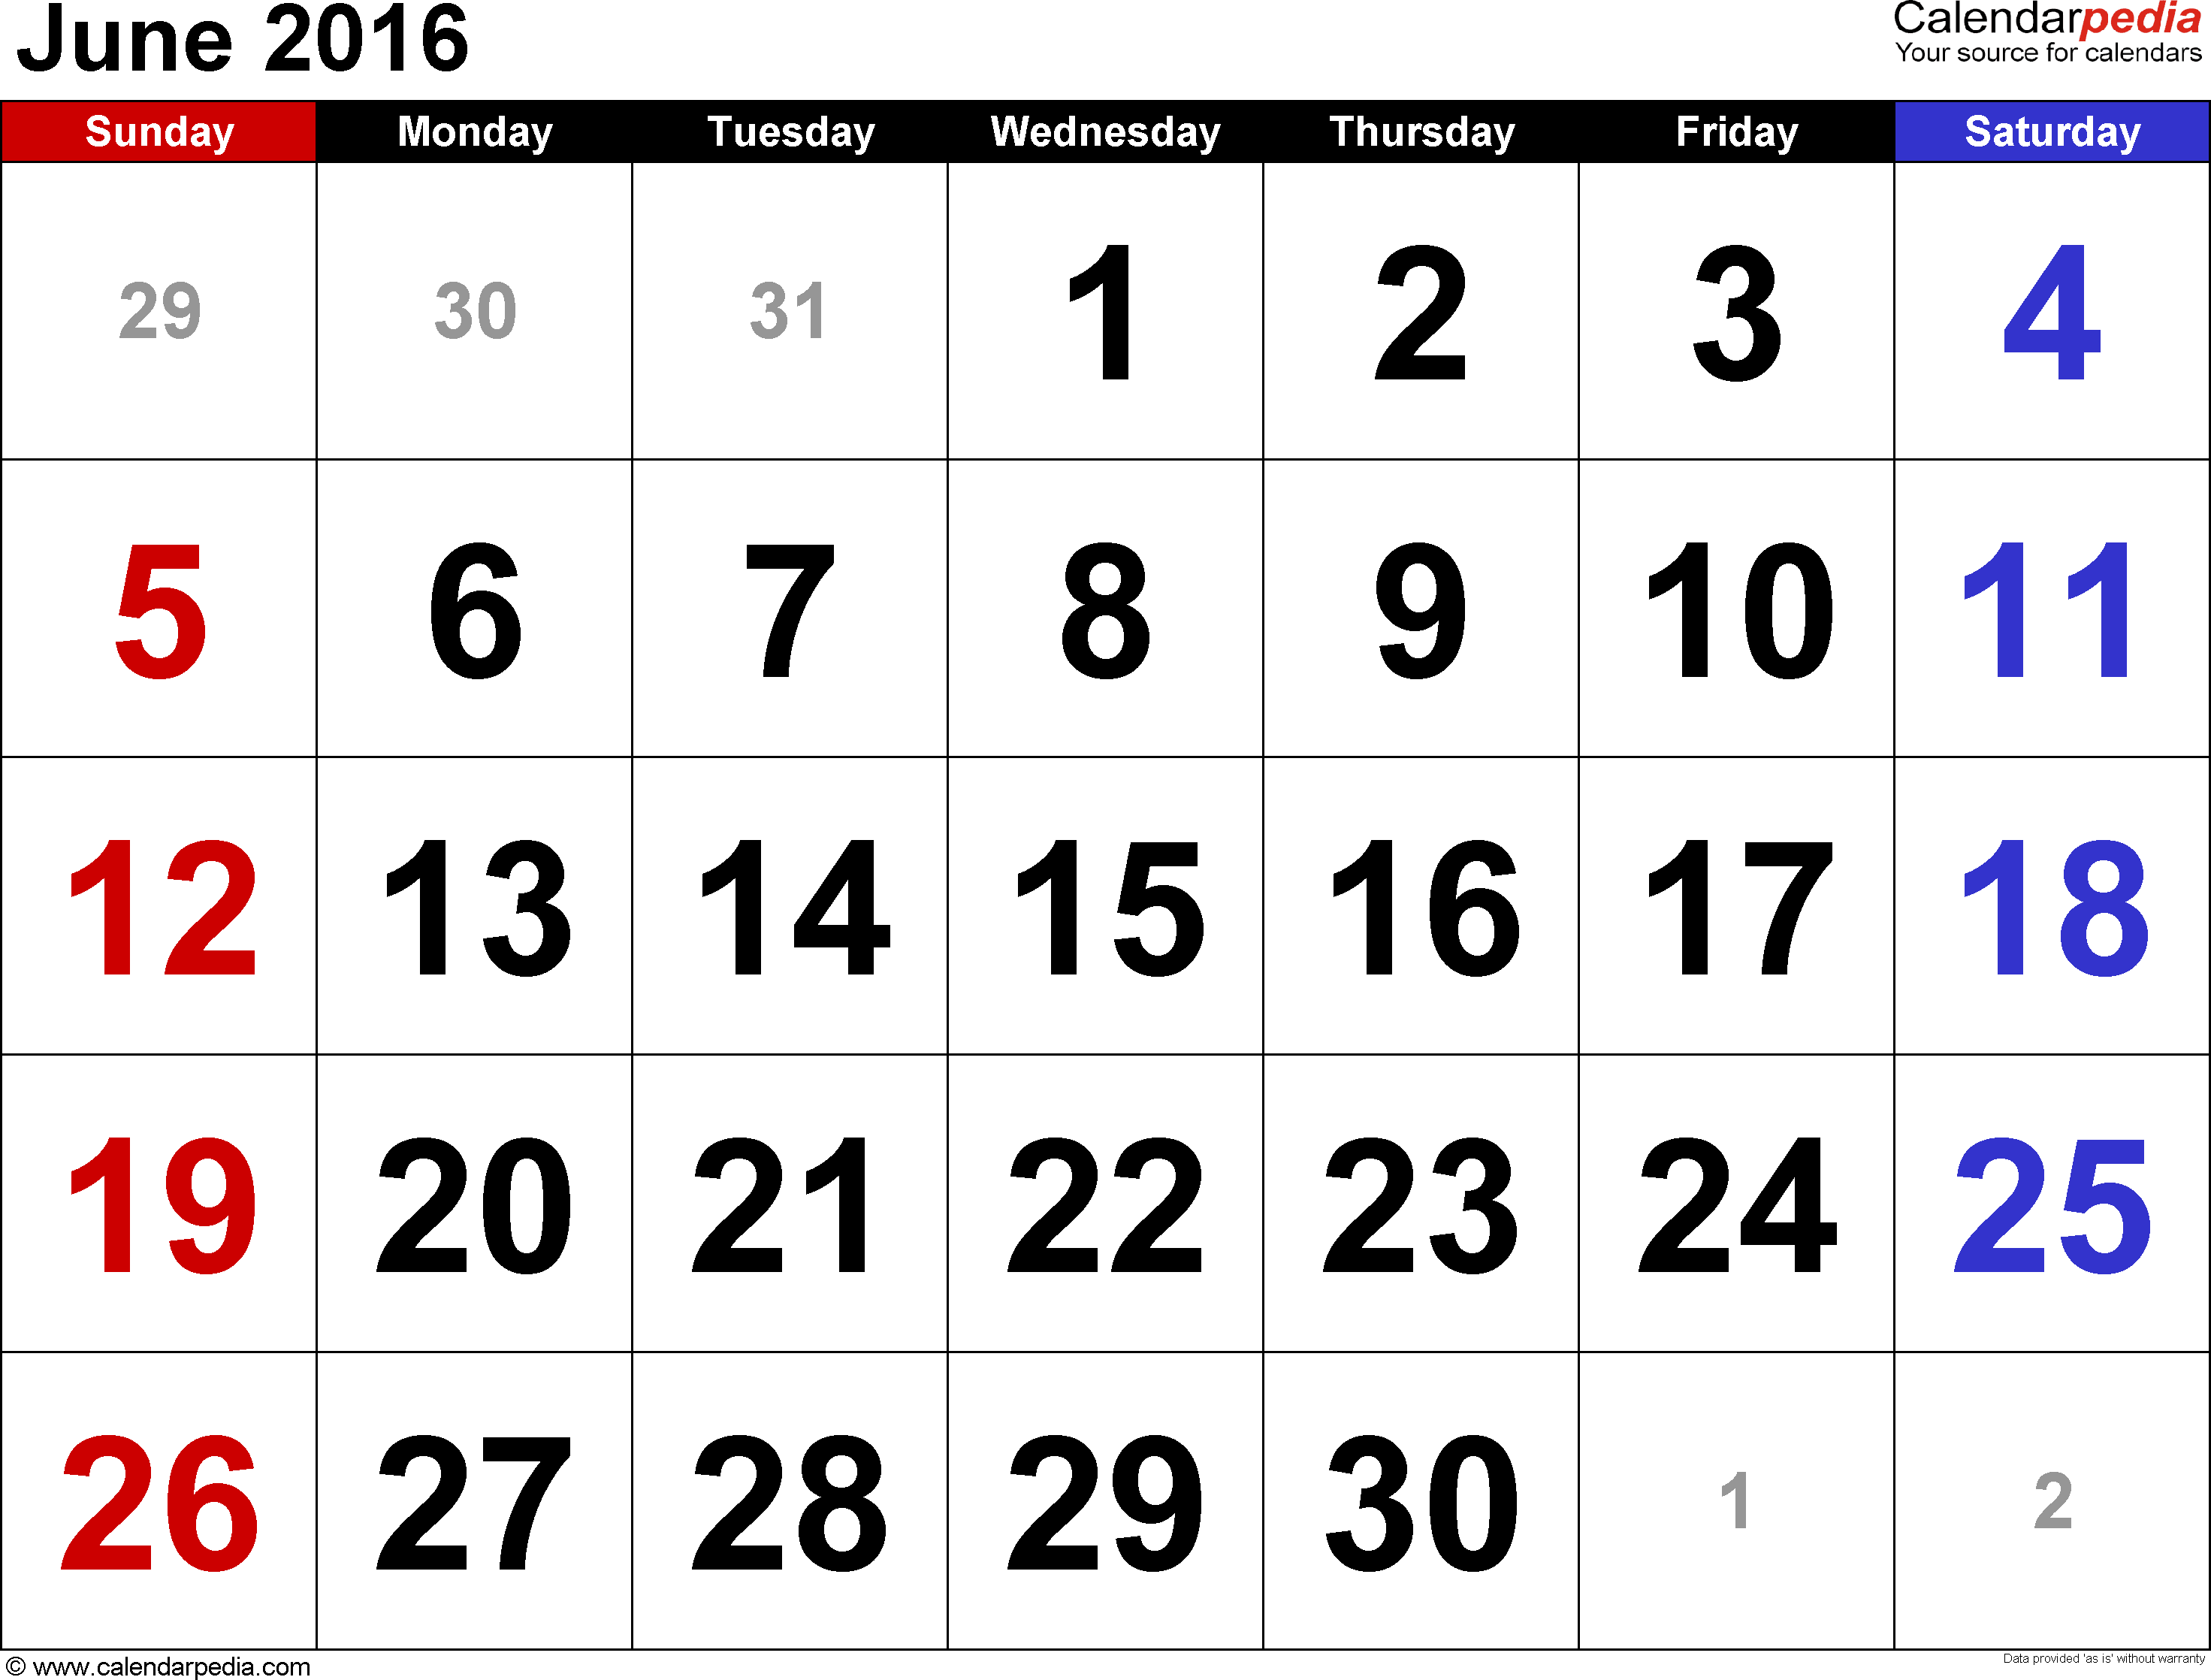 June 2016 calendar, landscape orientation, large numerals, available as printable templates for Word, Excel and PDF